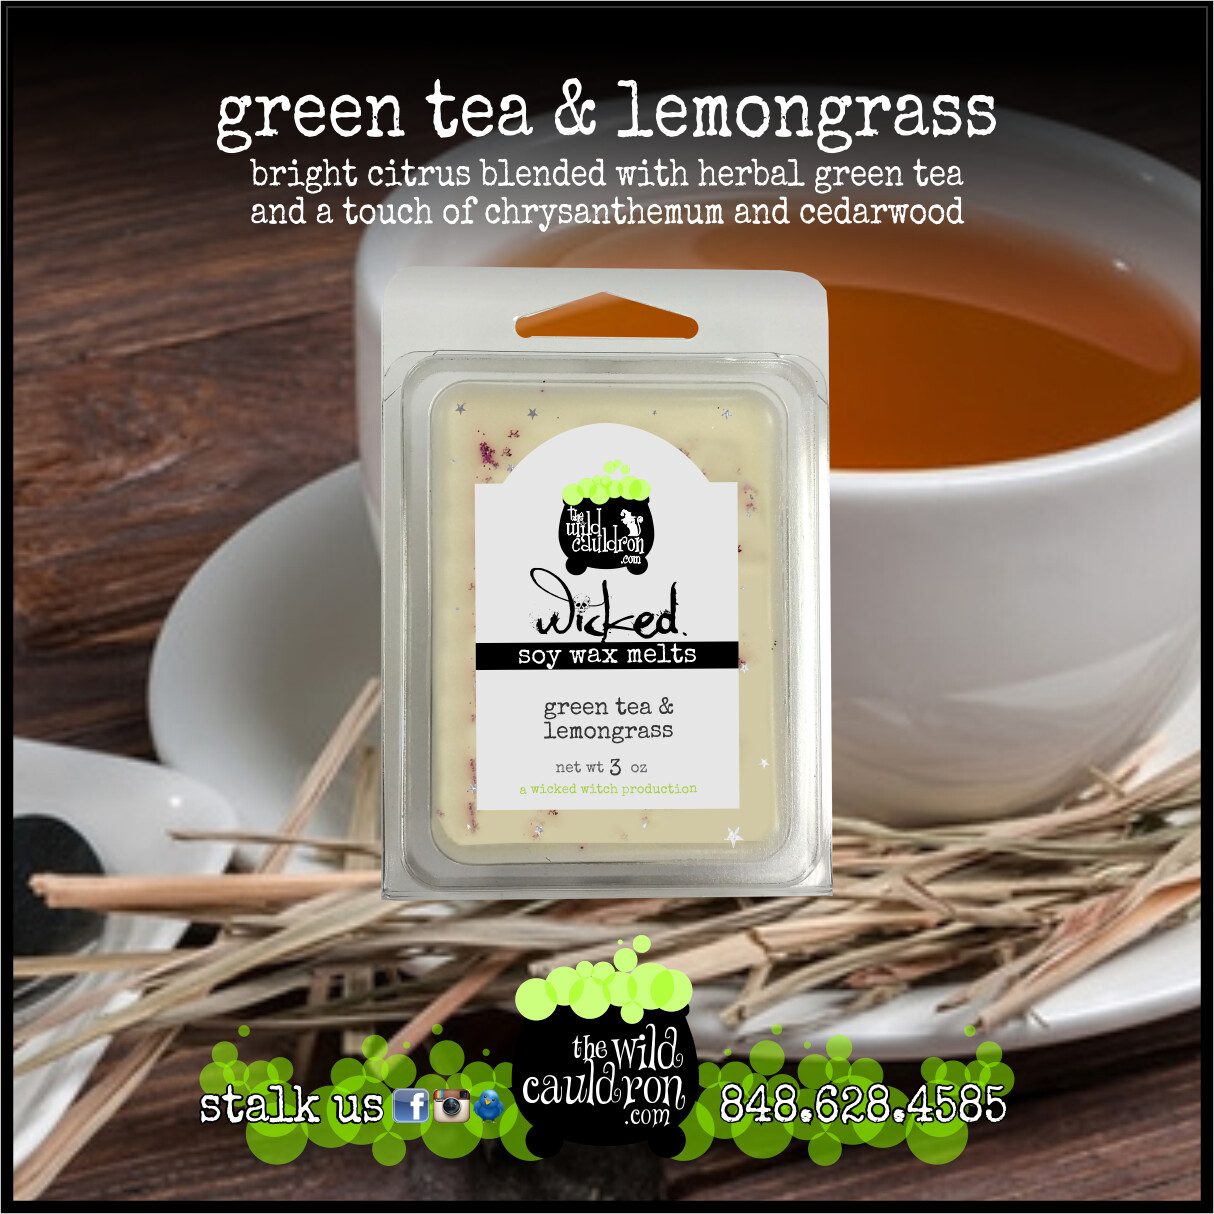 Green Tea and Lemongrass Wicked Wax Melts